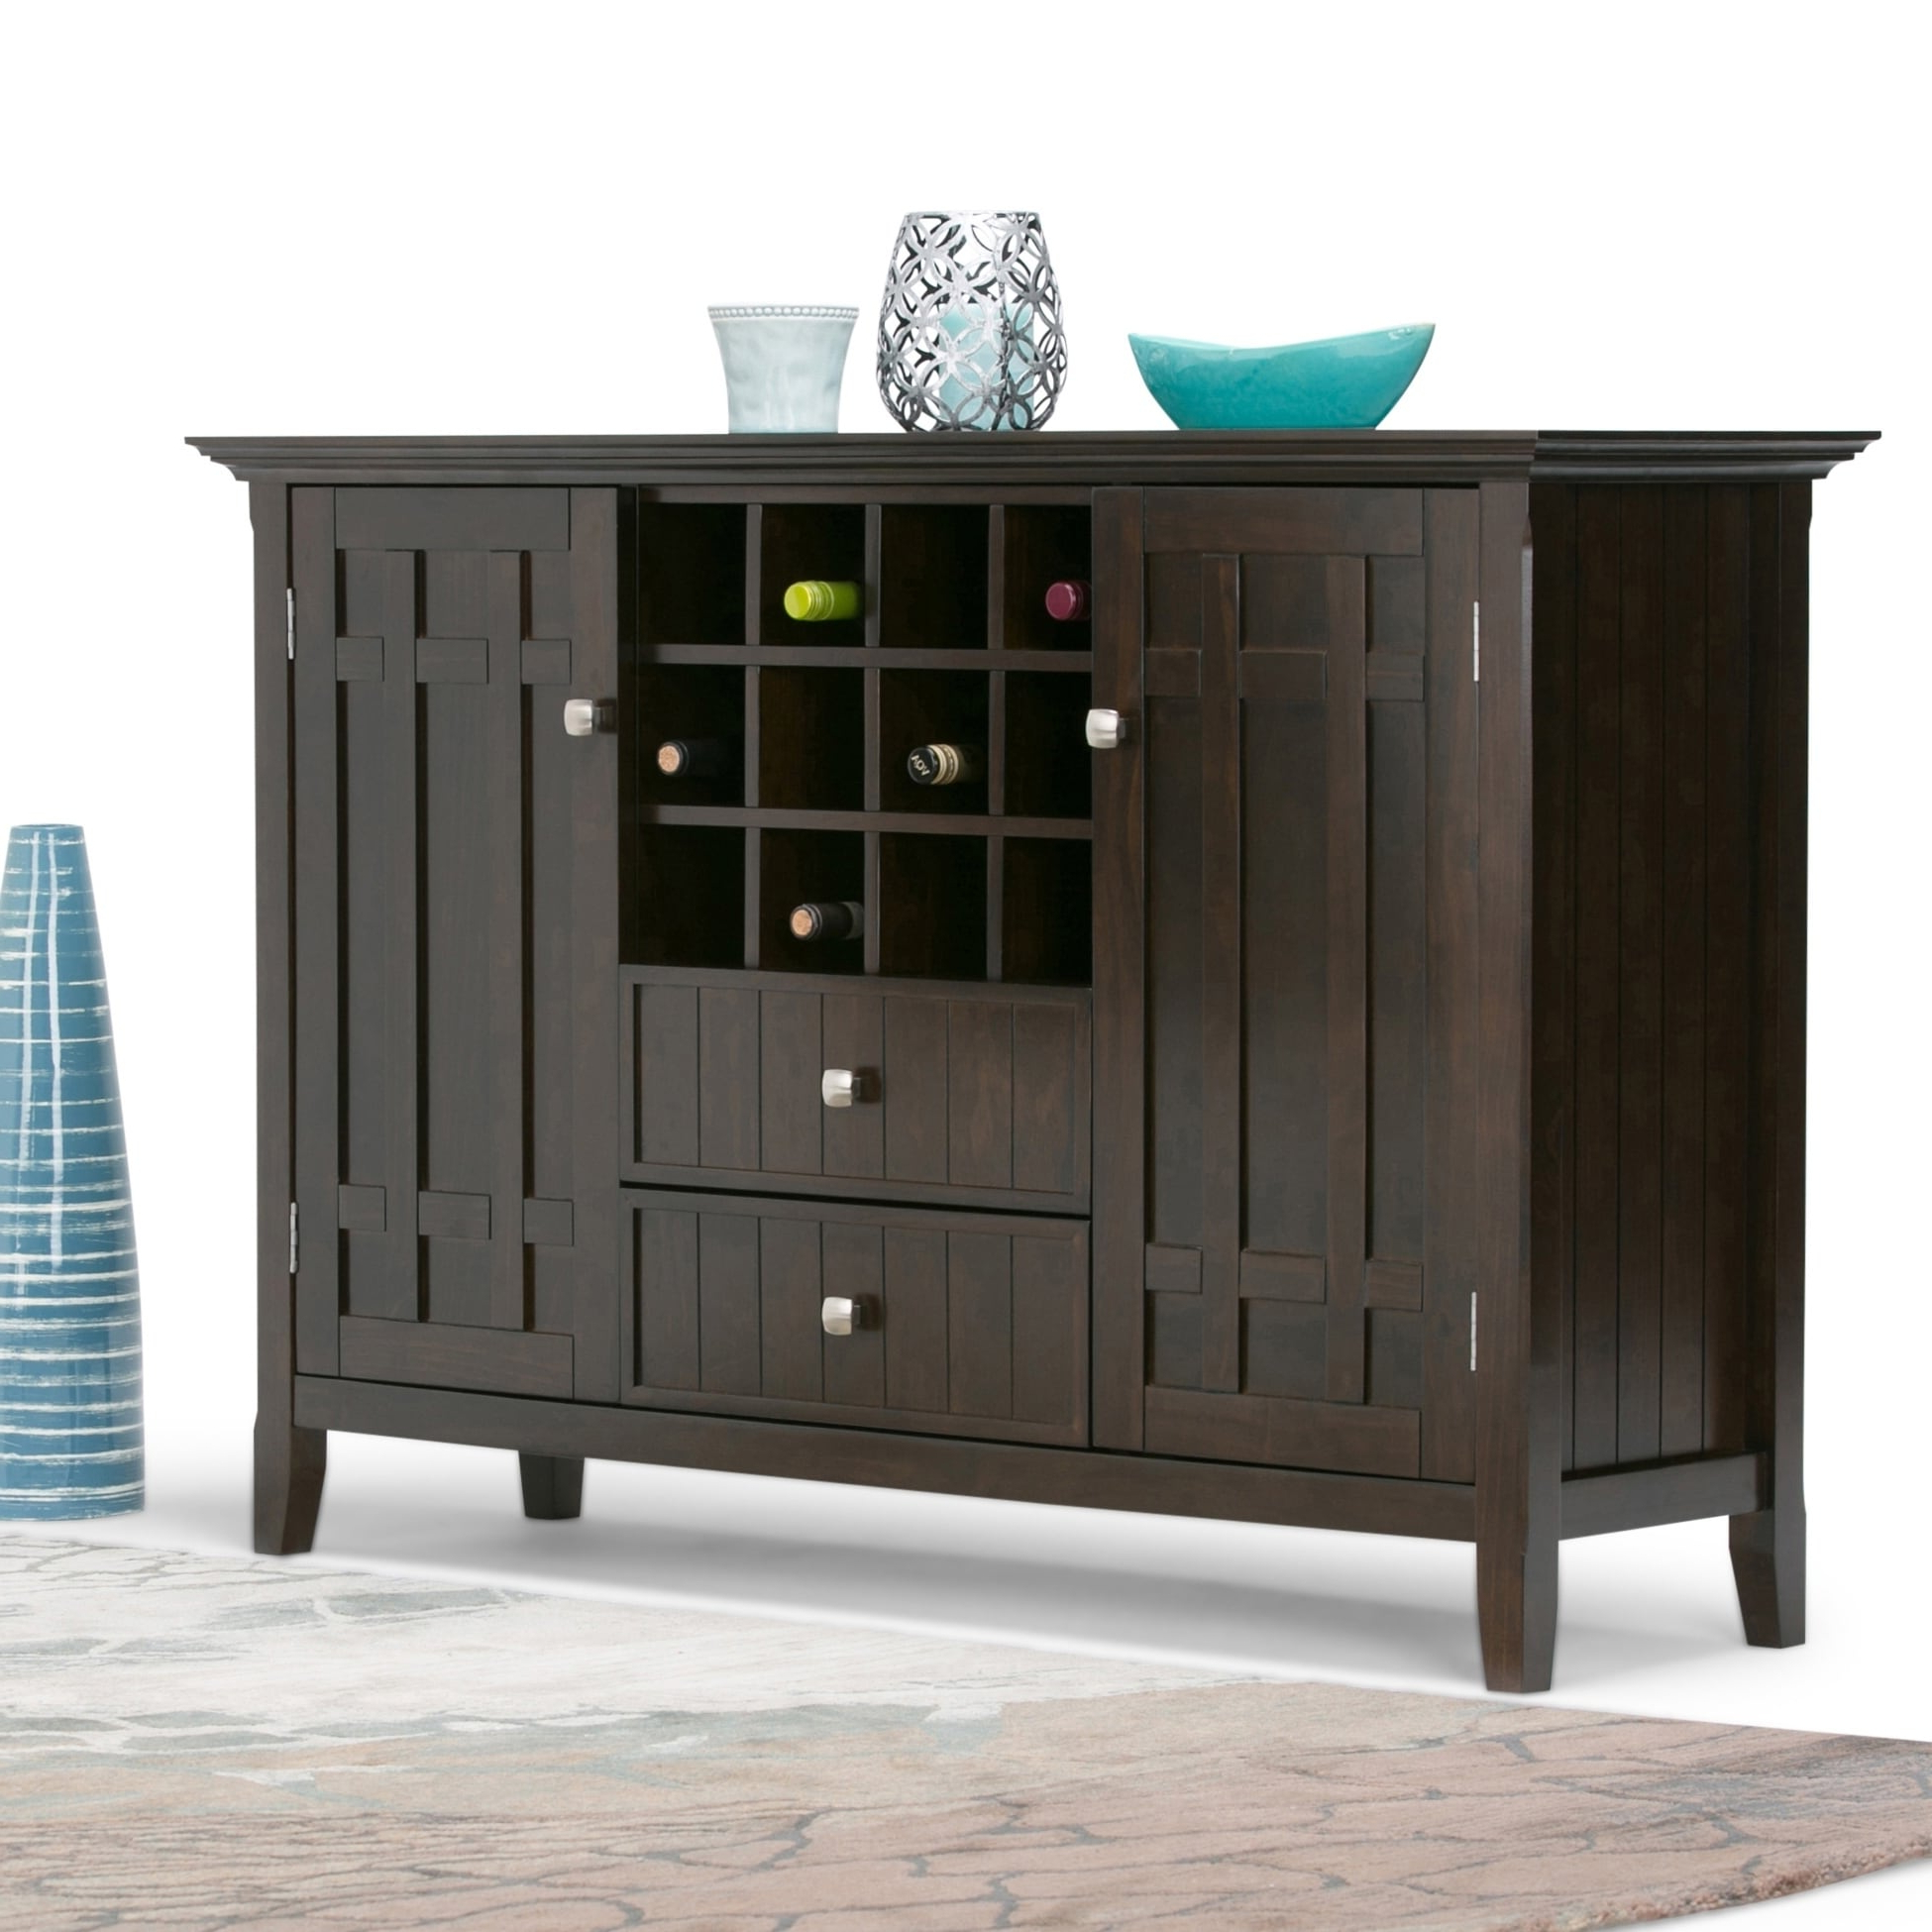 """Fritch 58"""" Wide Sideboards In Latest Wyndenhall Freemont Solid Wood 54 Inch Wide Rustic (View 16 of 20)"""